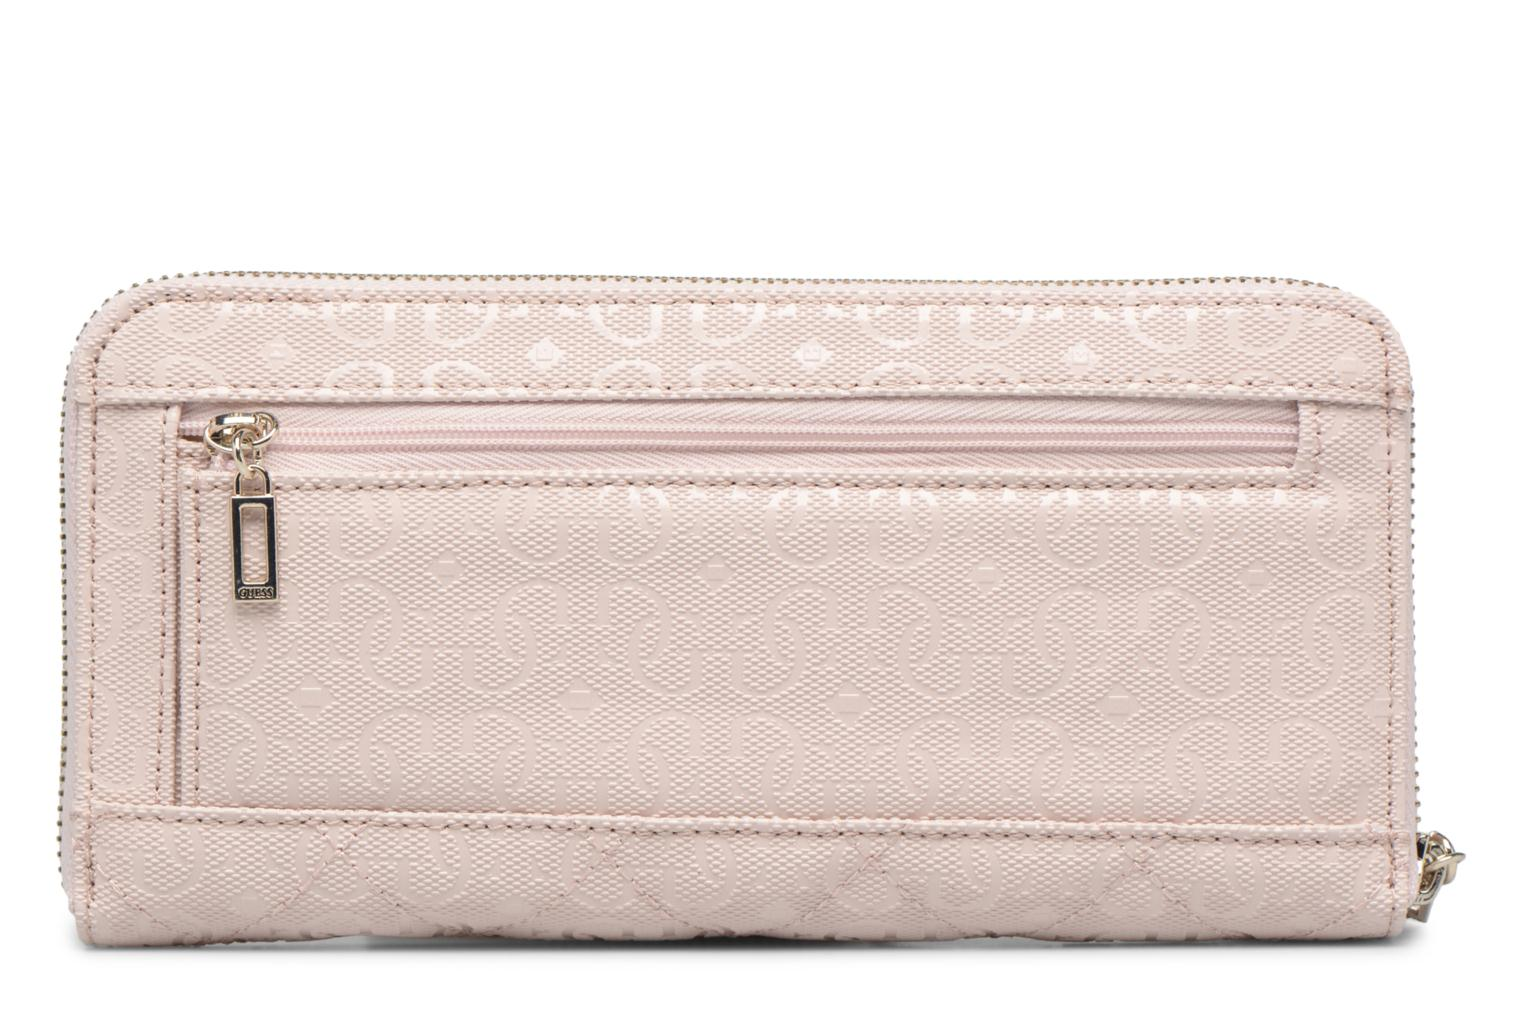 Seraphina SLG Large Zip Around Blush